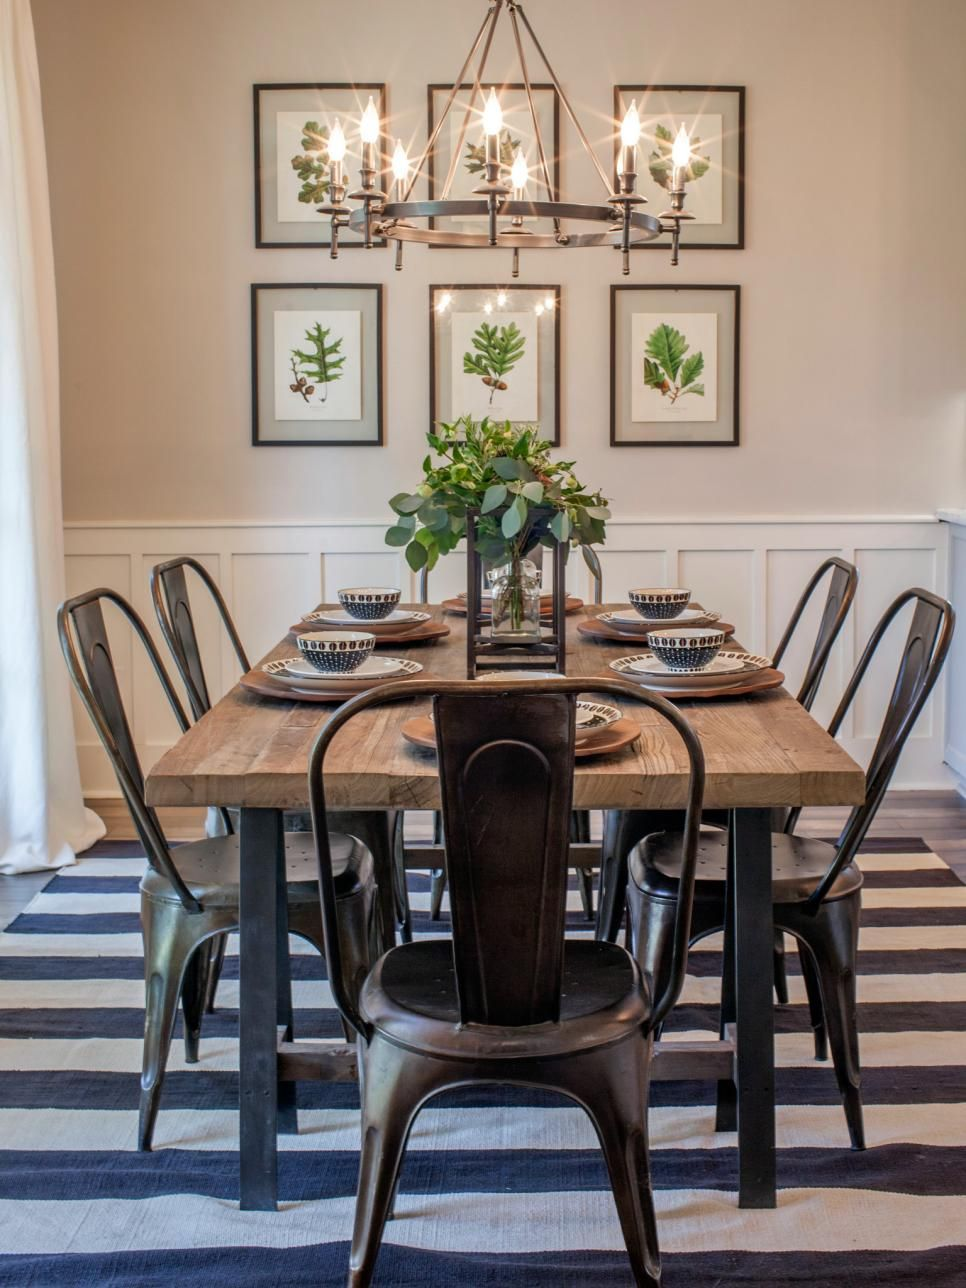 dining table with metal chairs best big and tall desk our 25 most pinned photos of 2016 room pinterest i would probably change the to scandinavian ones we re willing bet at least one these made it onto your boards this year